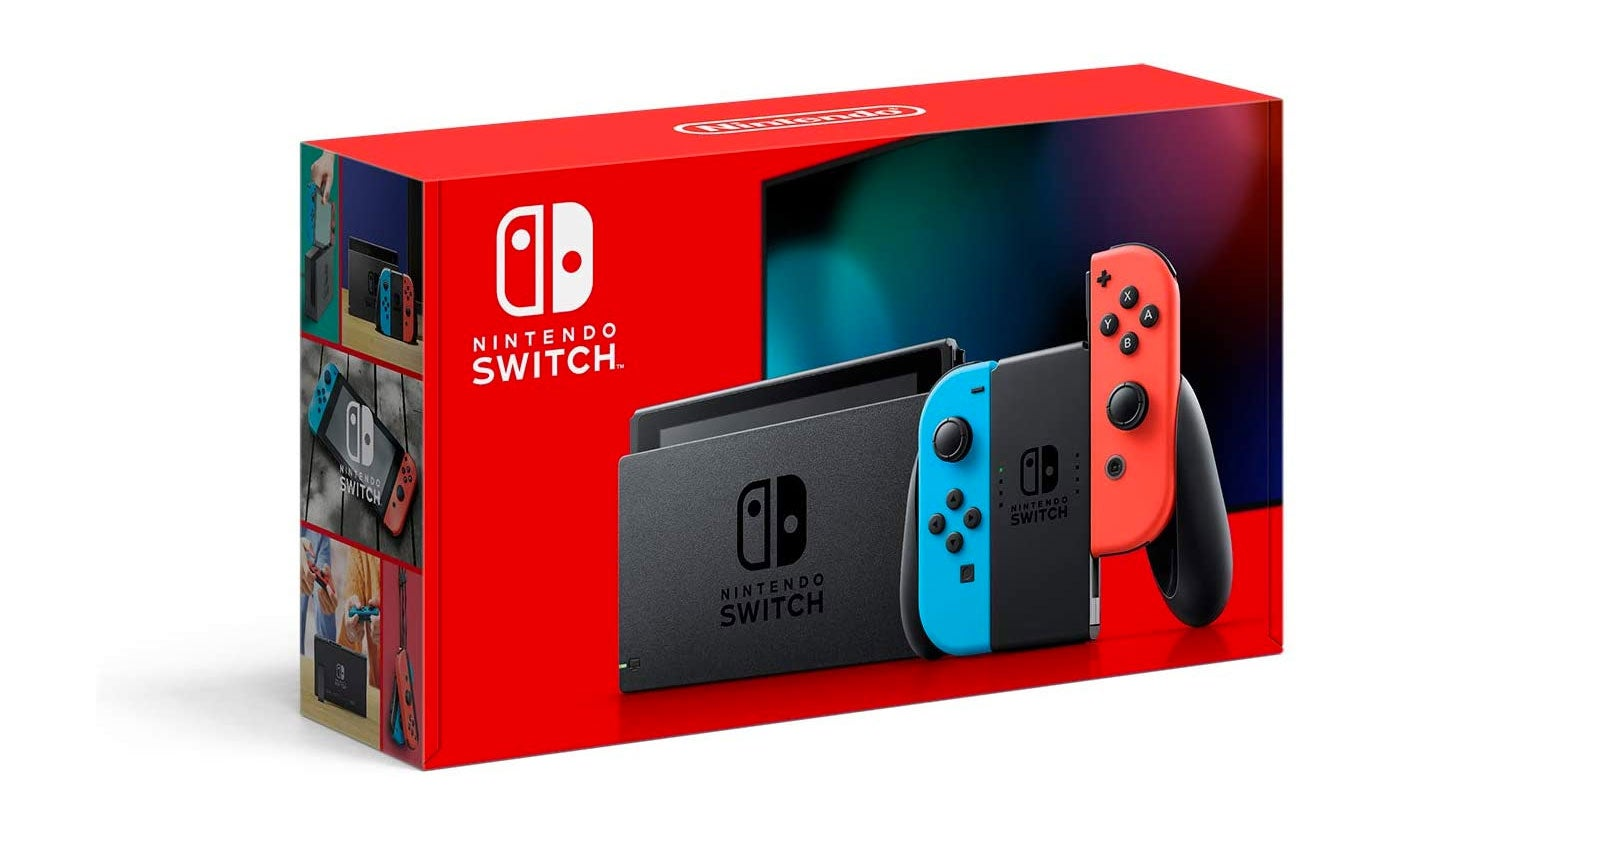 Nintendo Switch with Neon Blue and Neon Red